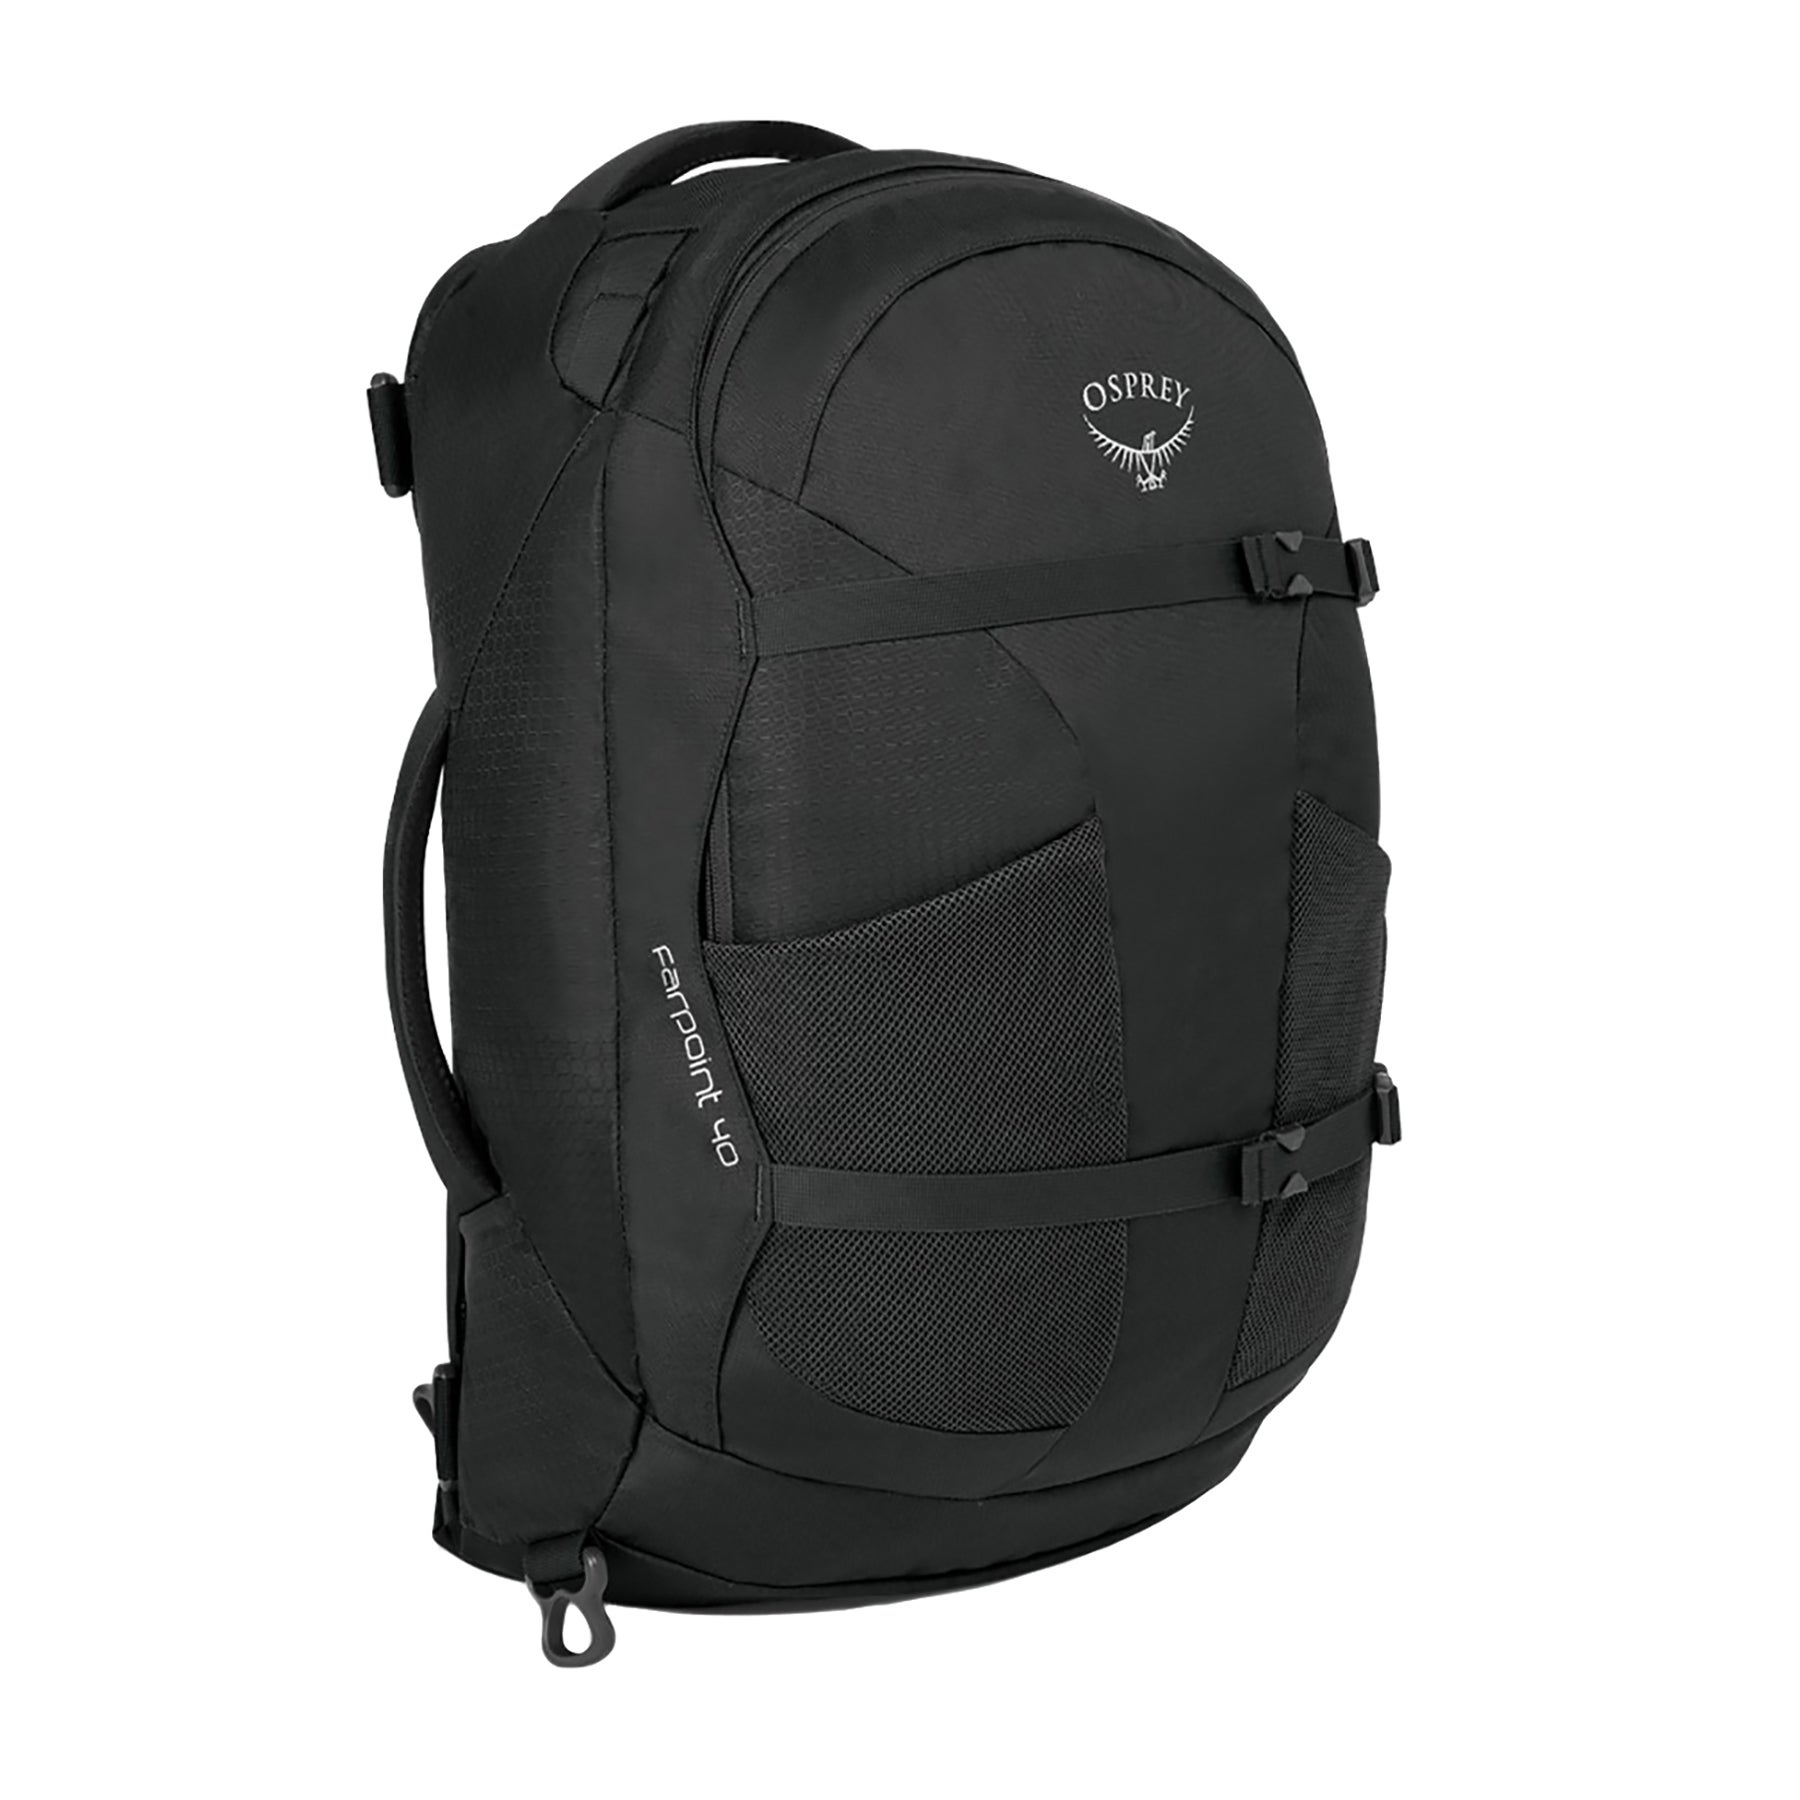 Osprey Farpoint 40 Backpack - Volcanic Grey